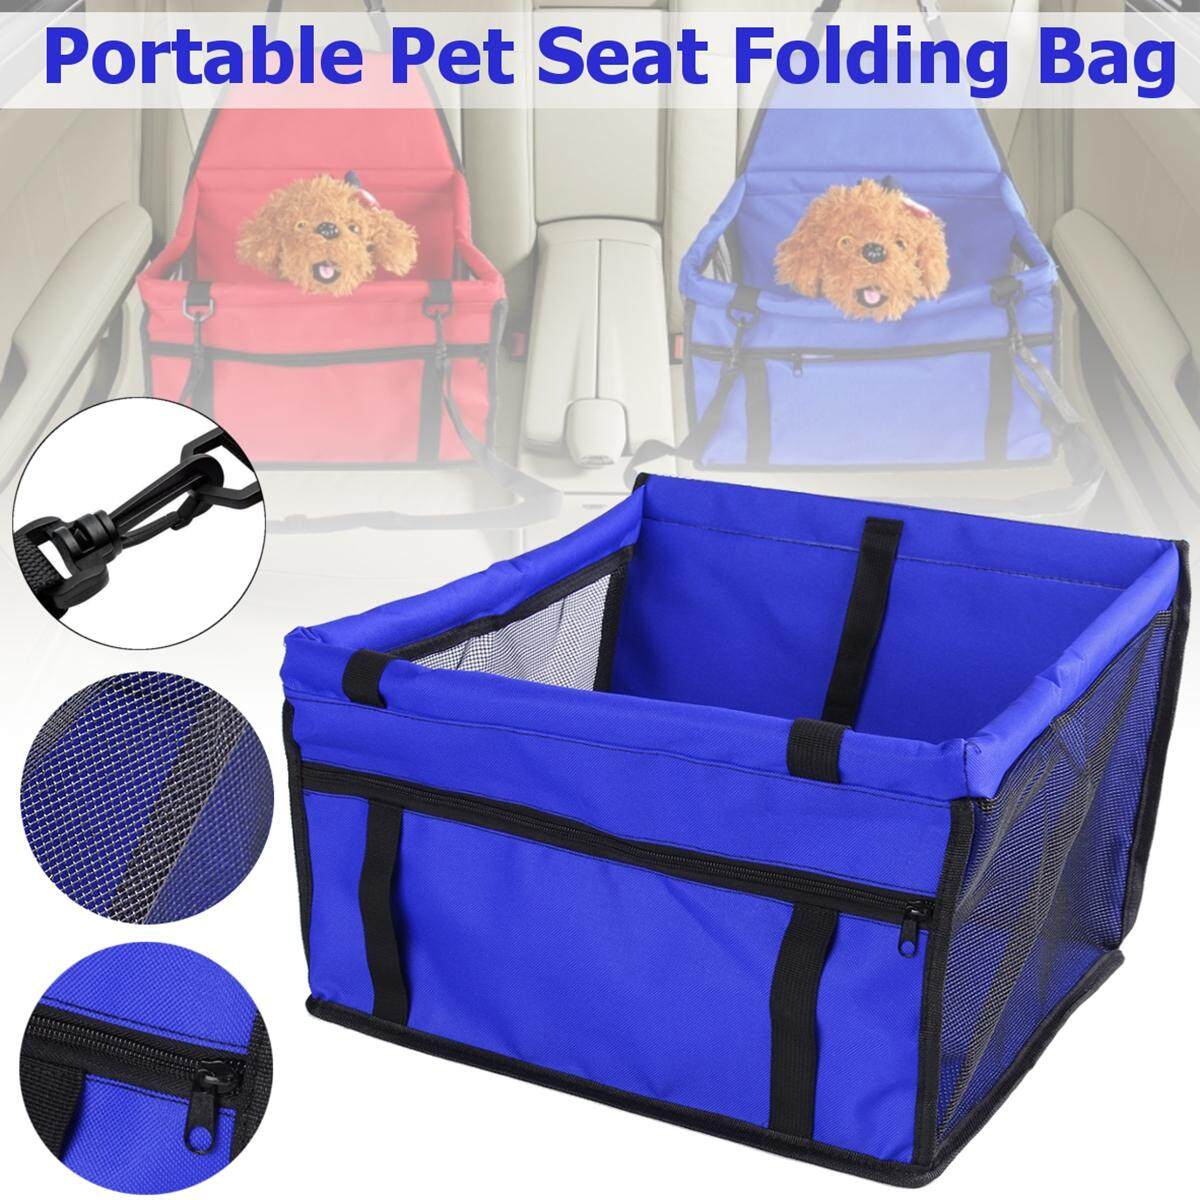 Portable Pet Car Seat Folding Travel Booster Bag Safely Carrier Belt Dog Puppy (blue) By Freebang.